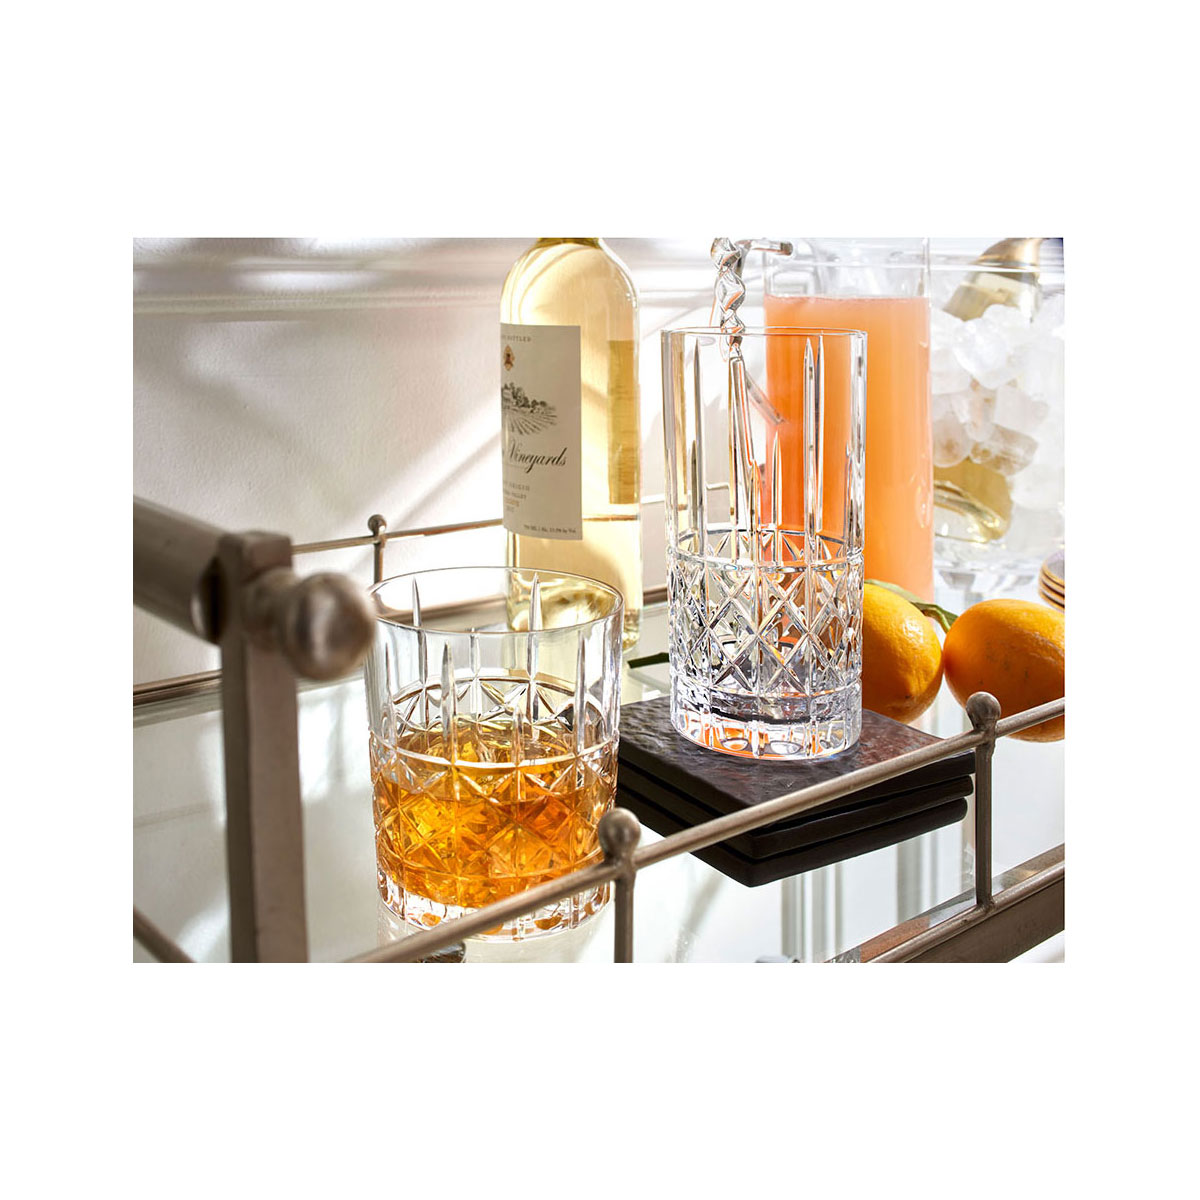 Marquis by Waterford Crystal Brady Decanter, 2 DOF Tumbler Set